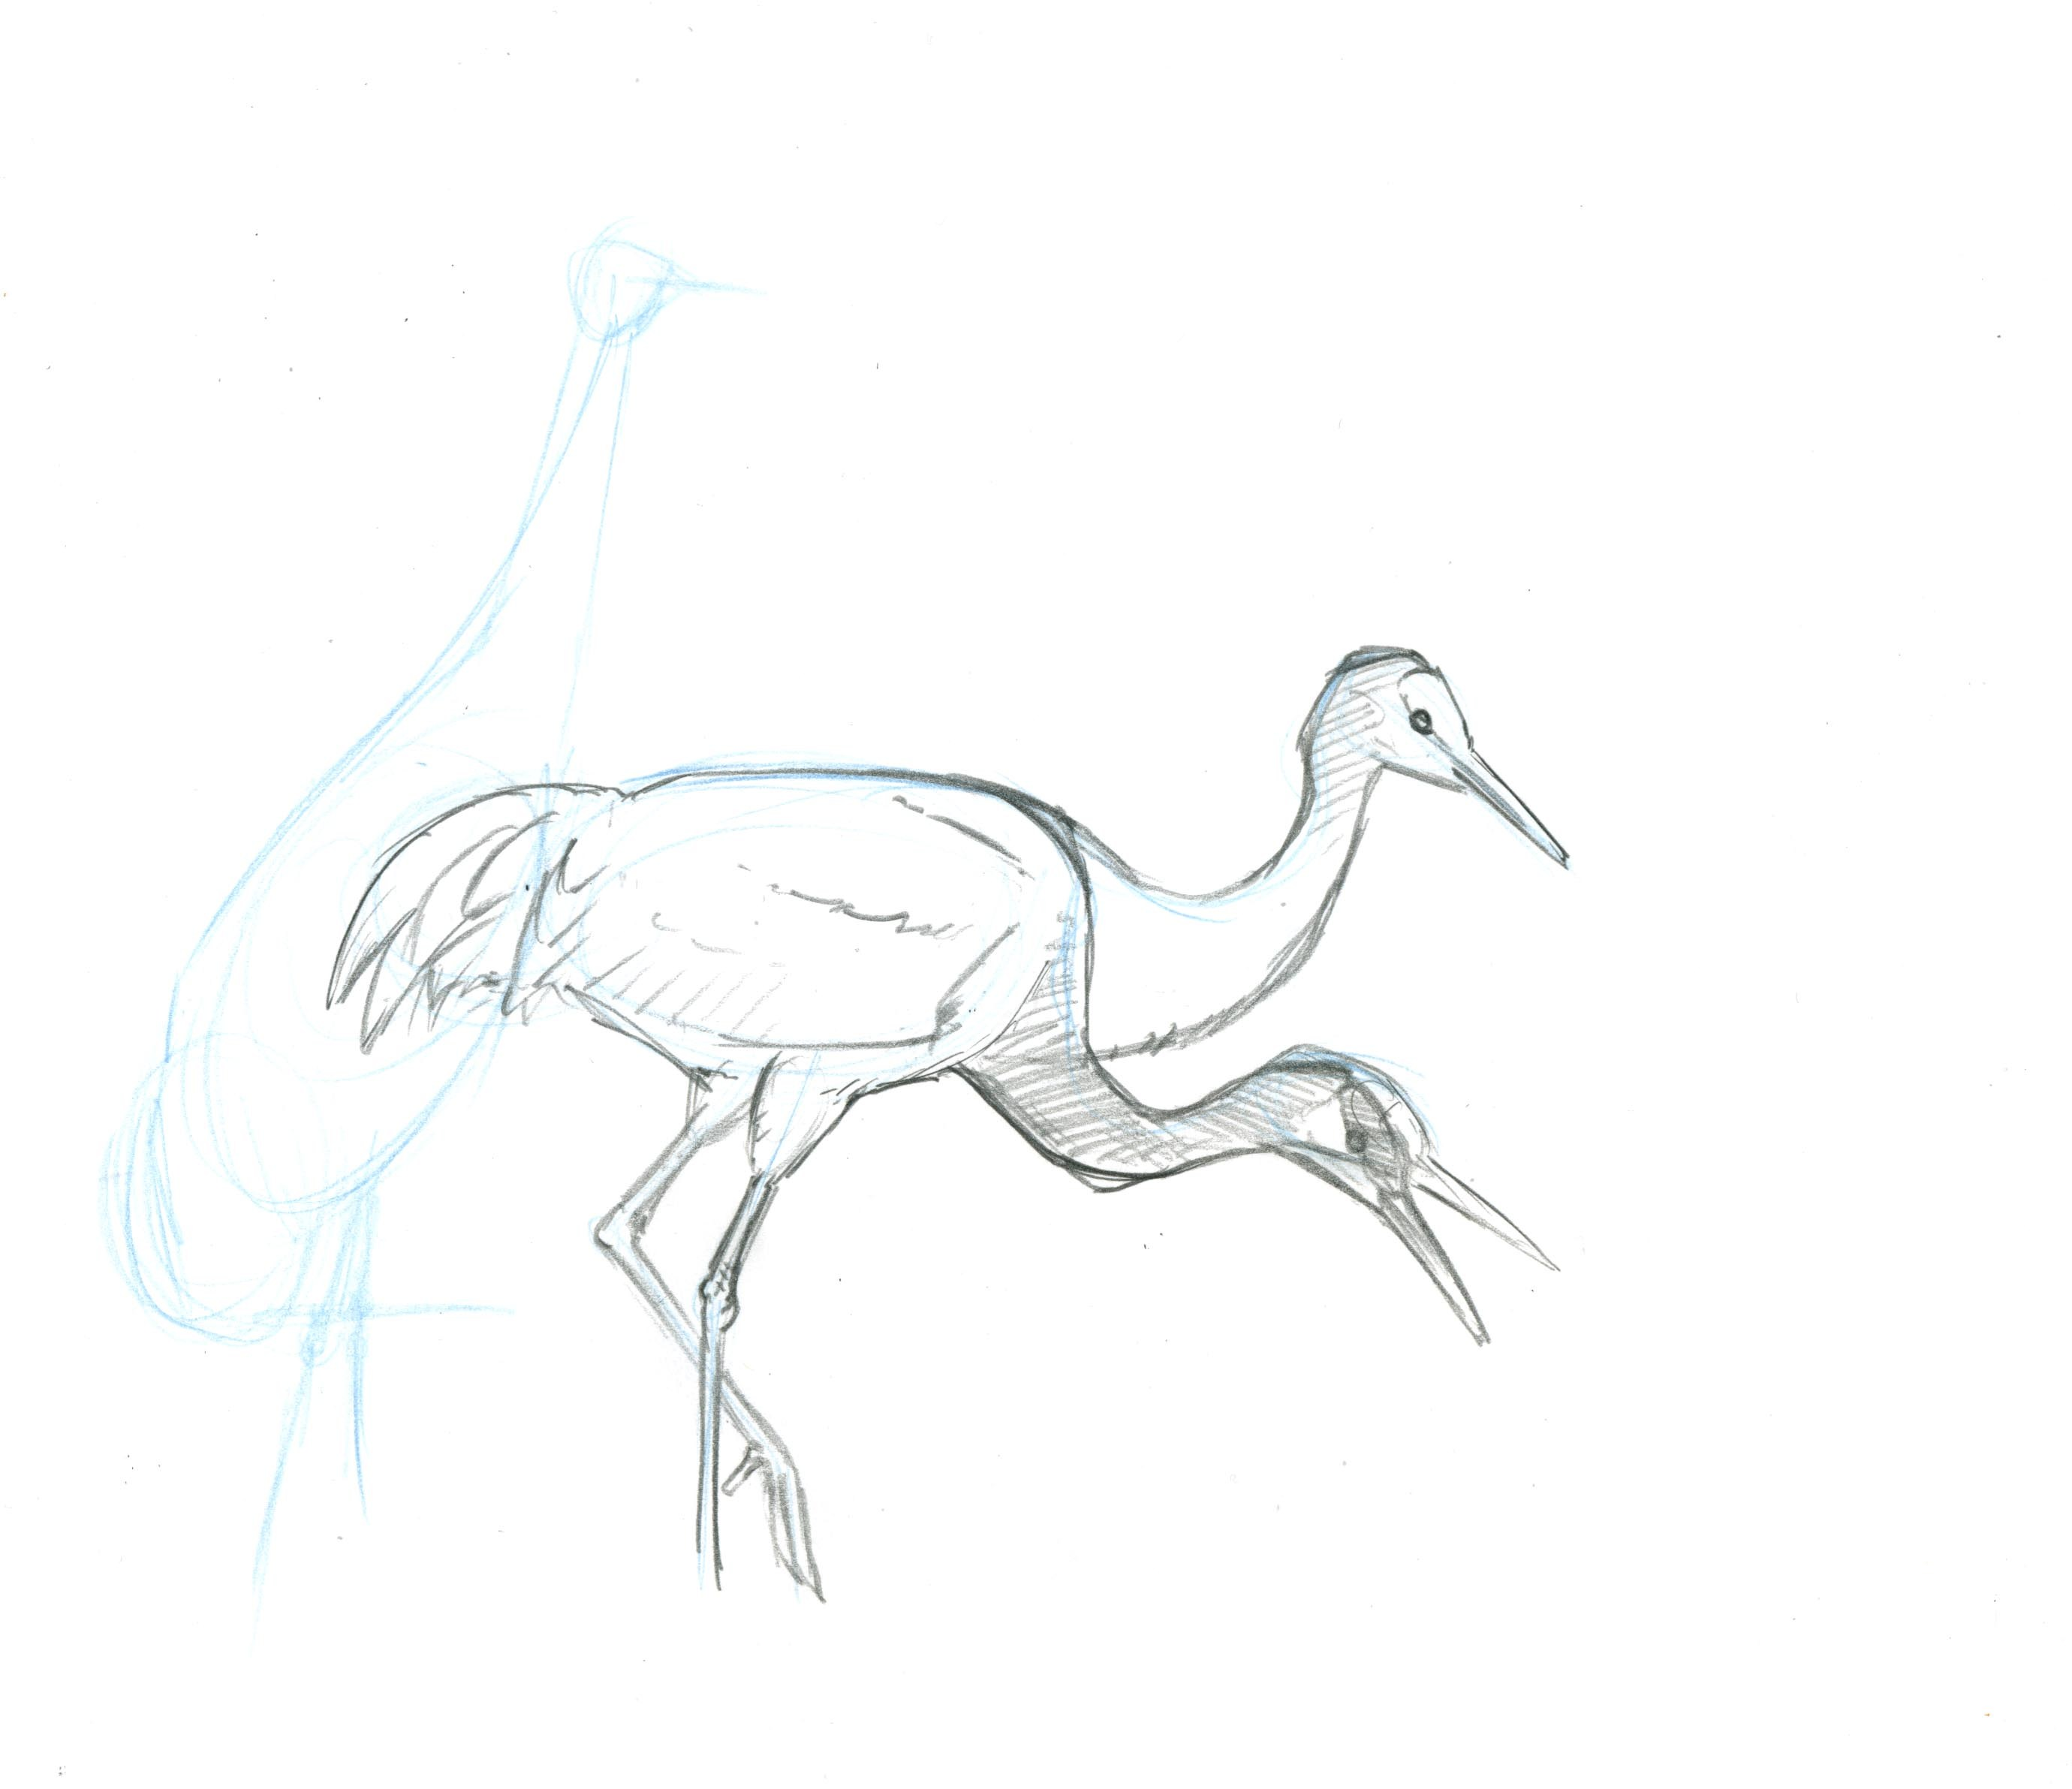 2760x2383 How To Paint A Sandhill Crane Landscape, Step By Step